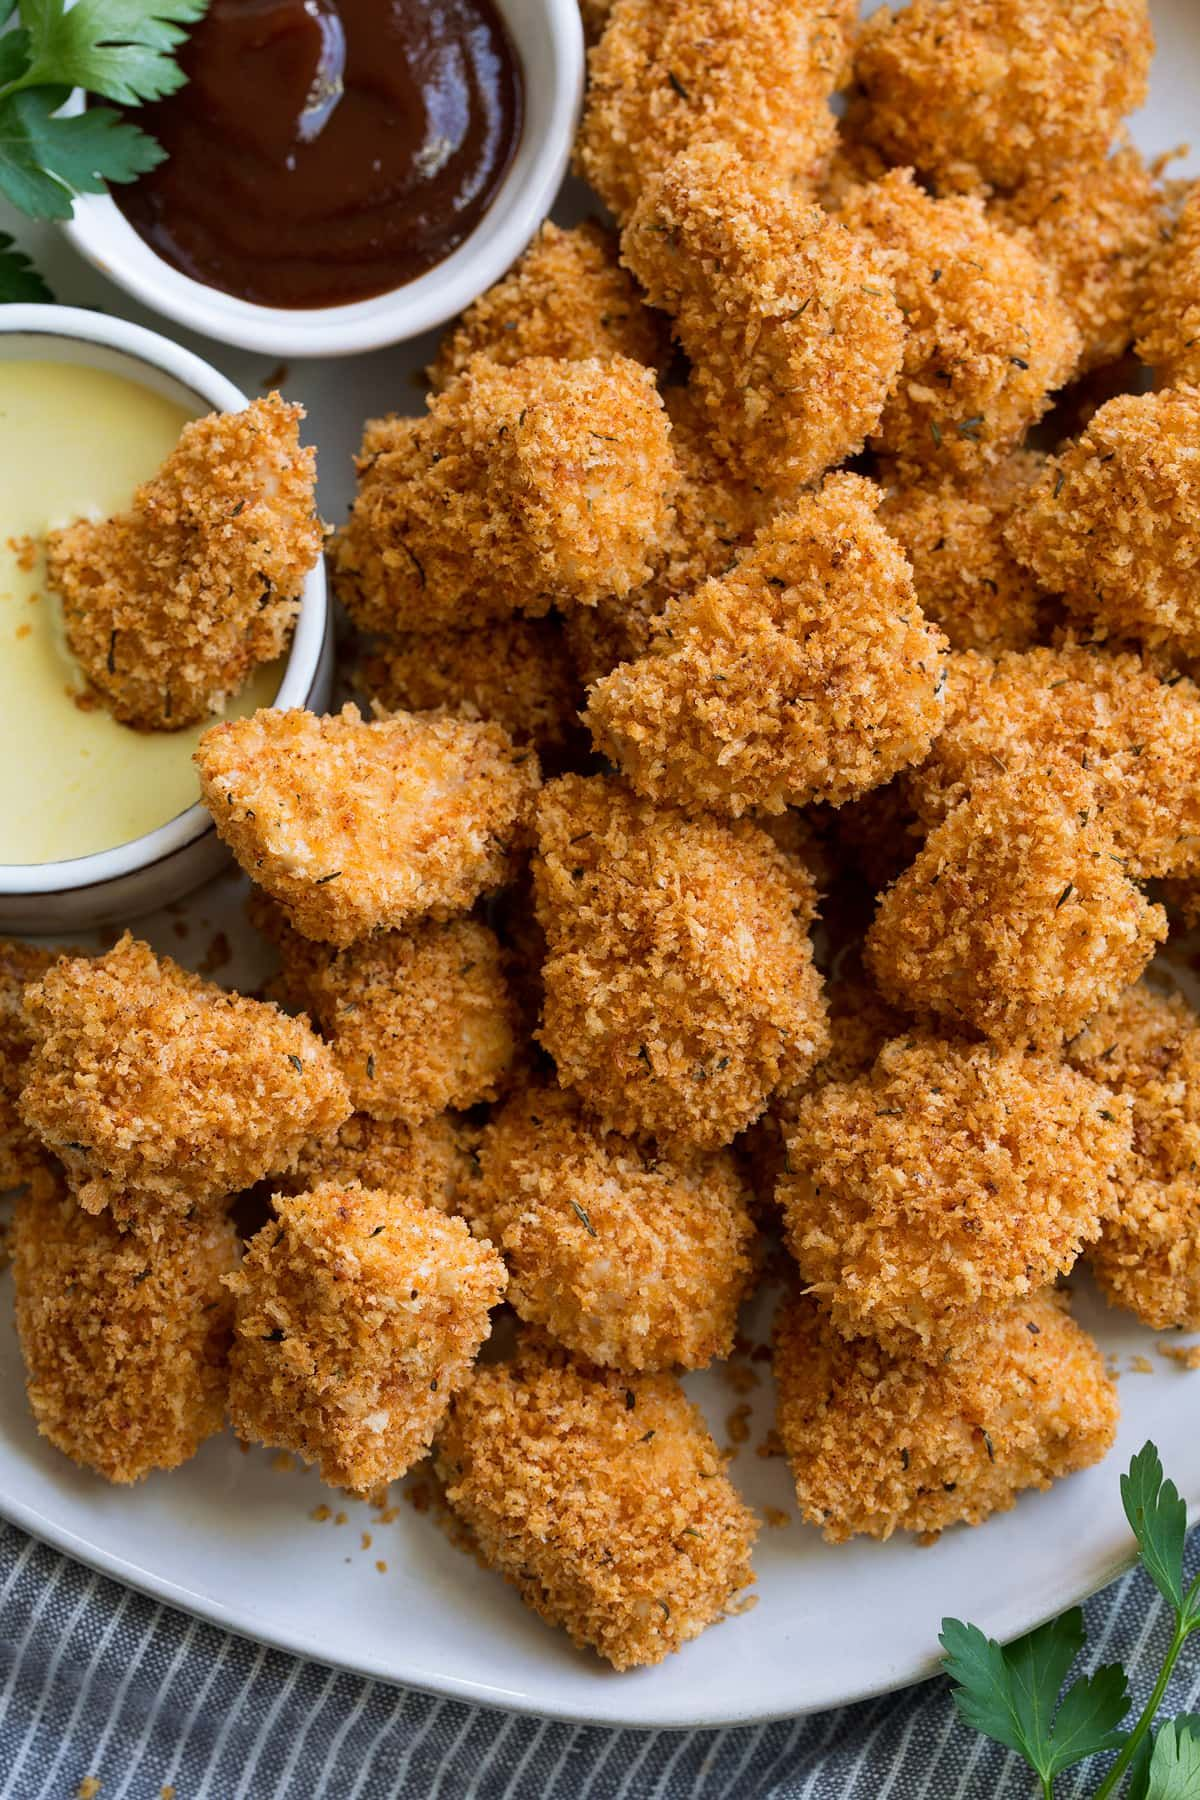 Homemade Chicken Nuggets Made With Real Ingredients These Are Oven Baked Instead Of Fried So In 2020 Baked Chicken Nuggets Chicken Nuggets Homemade Chicken Nuggets